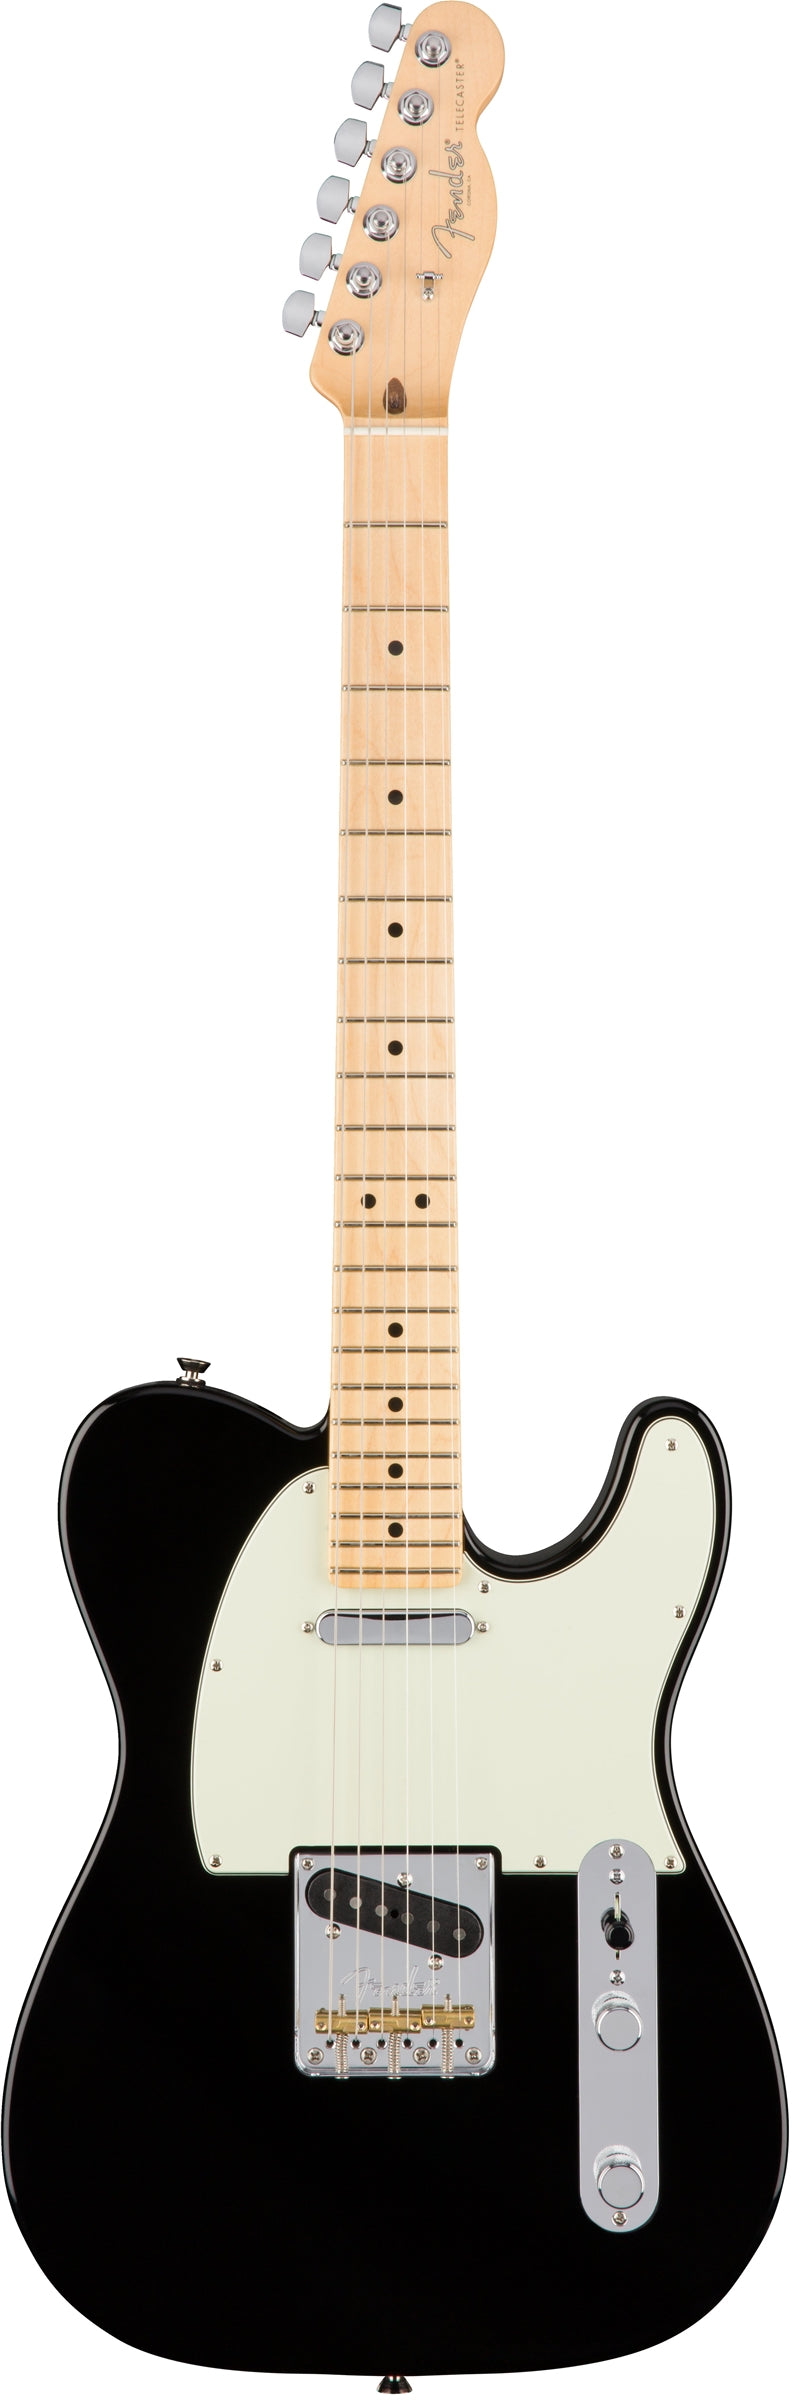 "Fender American Professional Telecaster w/ ""Deep C"" Neck - Maple Fingerboard, Black"